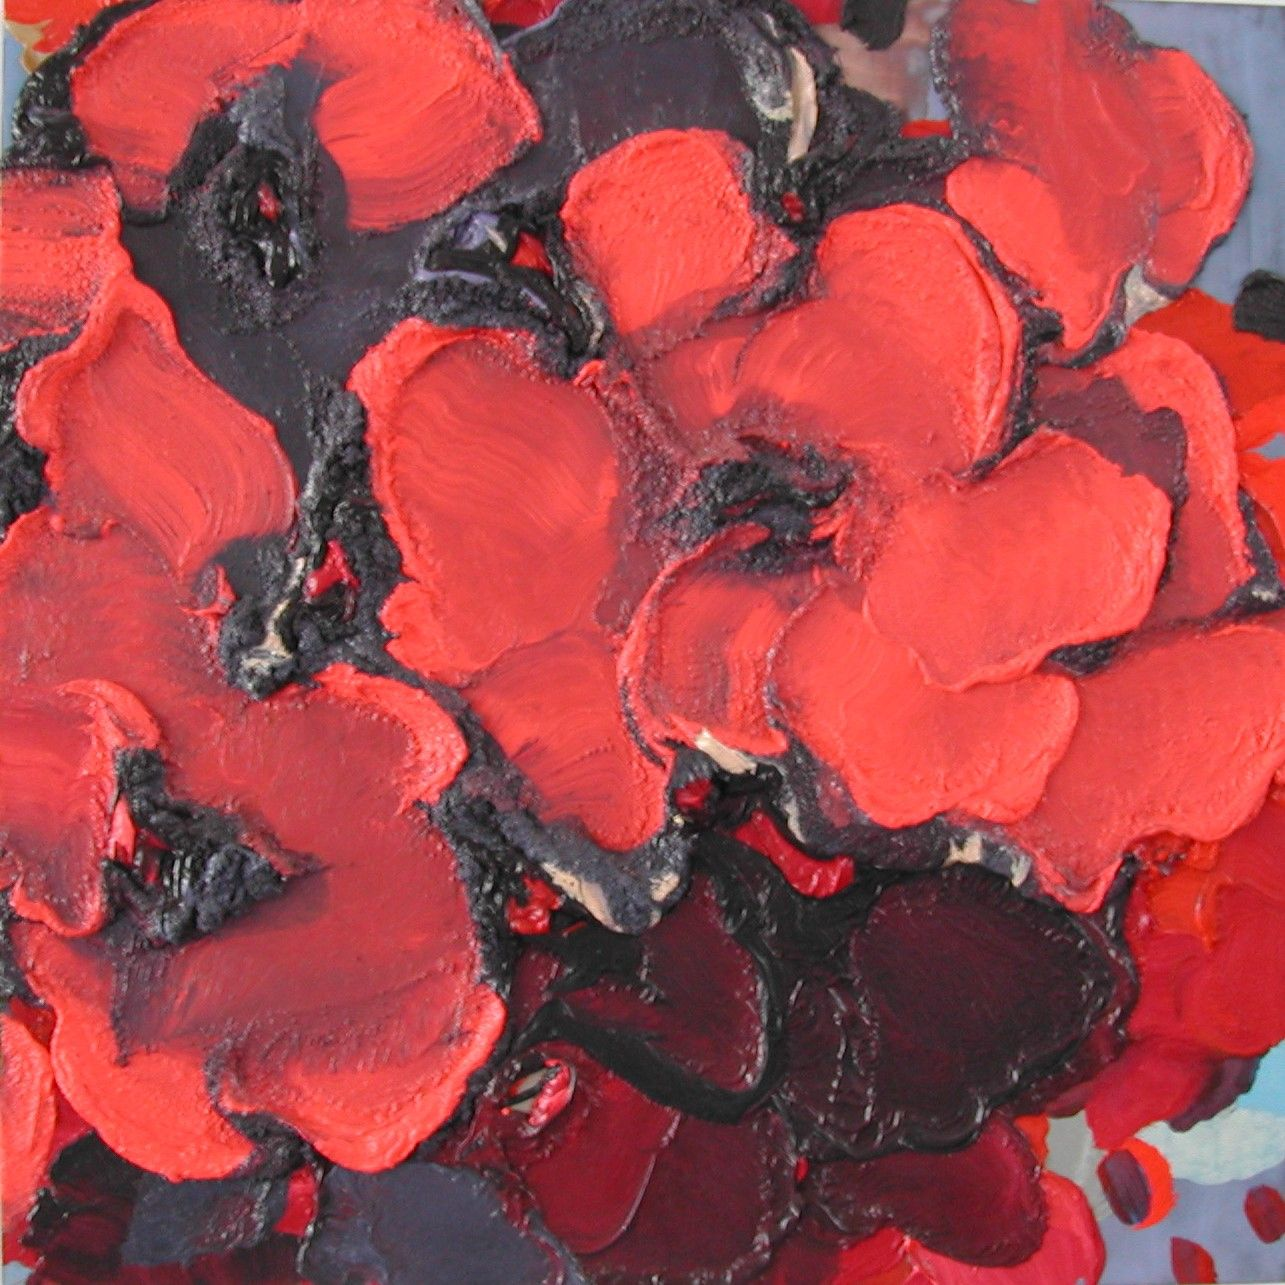 Jasmina Danowski, Untitled, 2003  24 x 24 inches,  Oil, pigment on wooden panel, Abstract petal shaped marks in red and black,  Jasmina Danowski creates abstract paintings that are rich in color and texture.